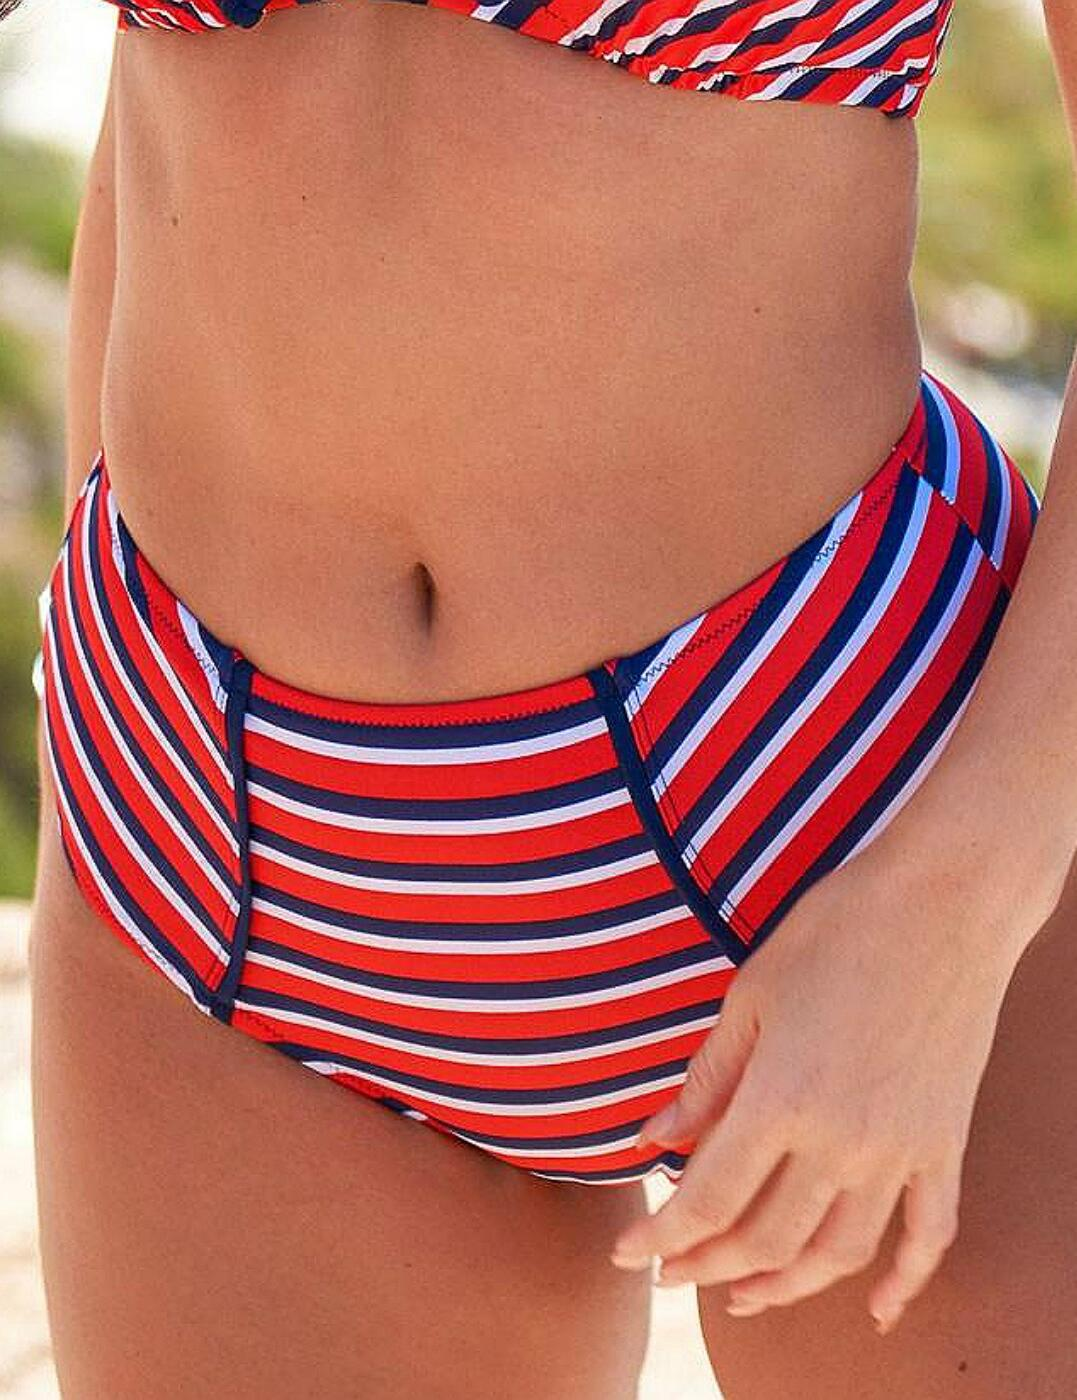 85005 Pour Moi? Hamptons Deep Bikini Brief - 85005 Multi Stripe